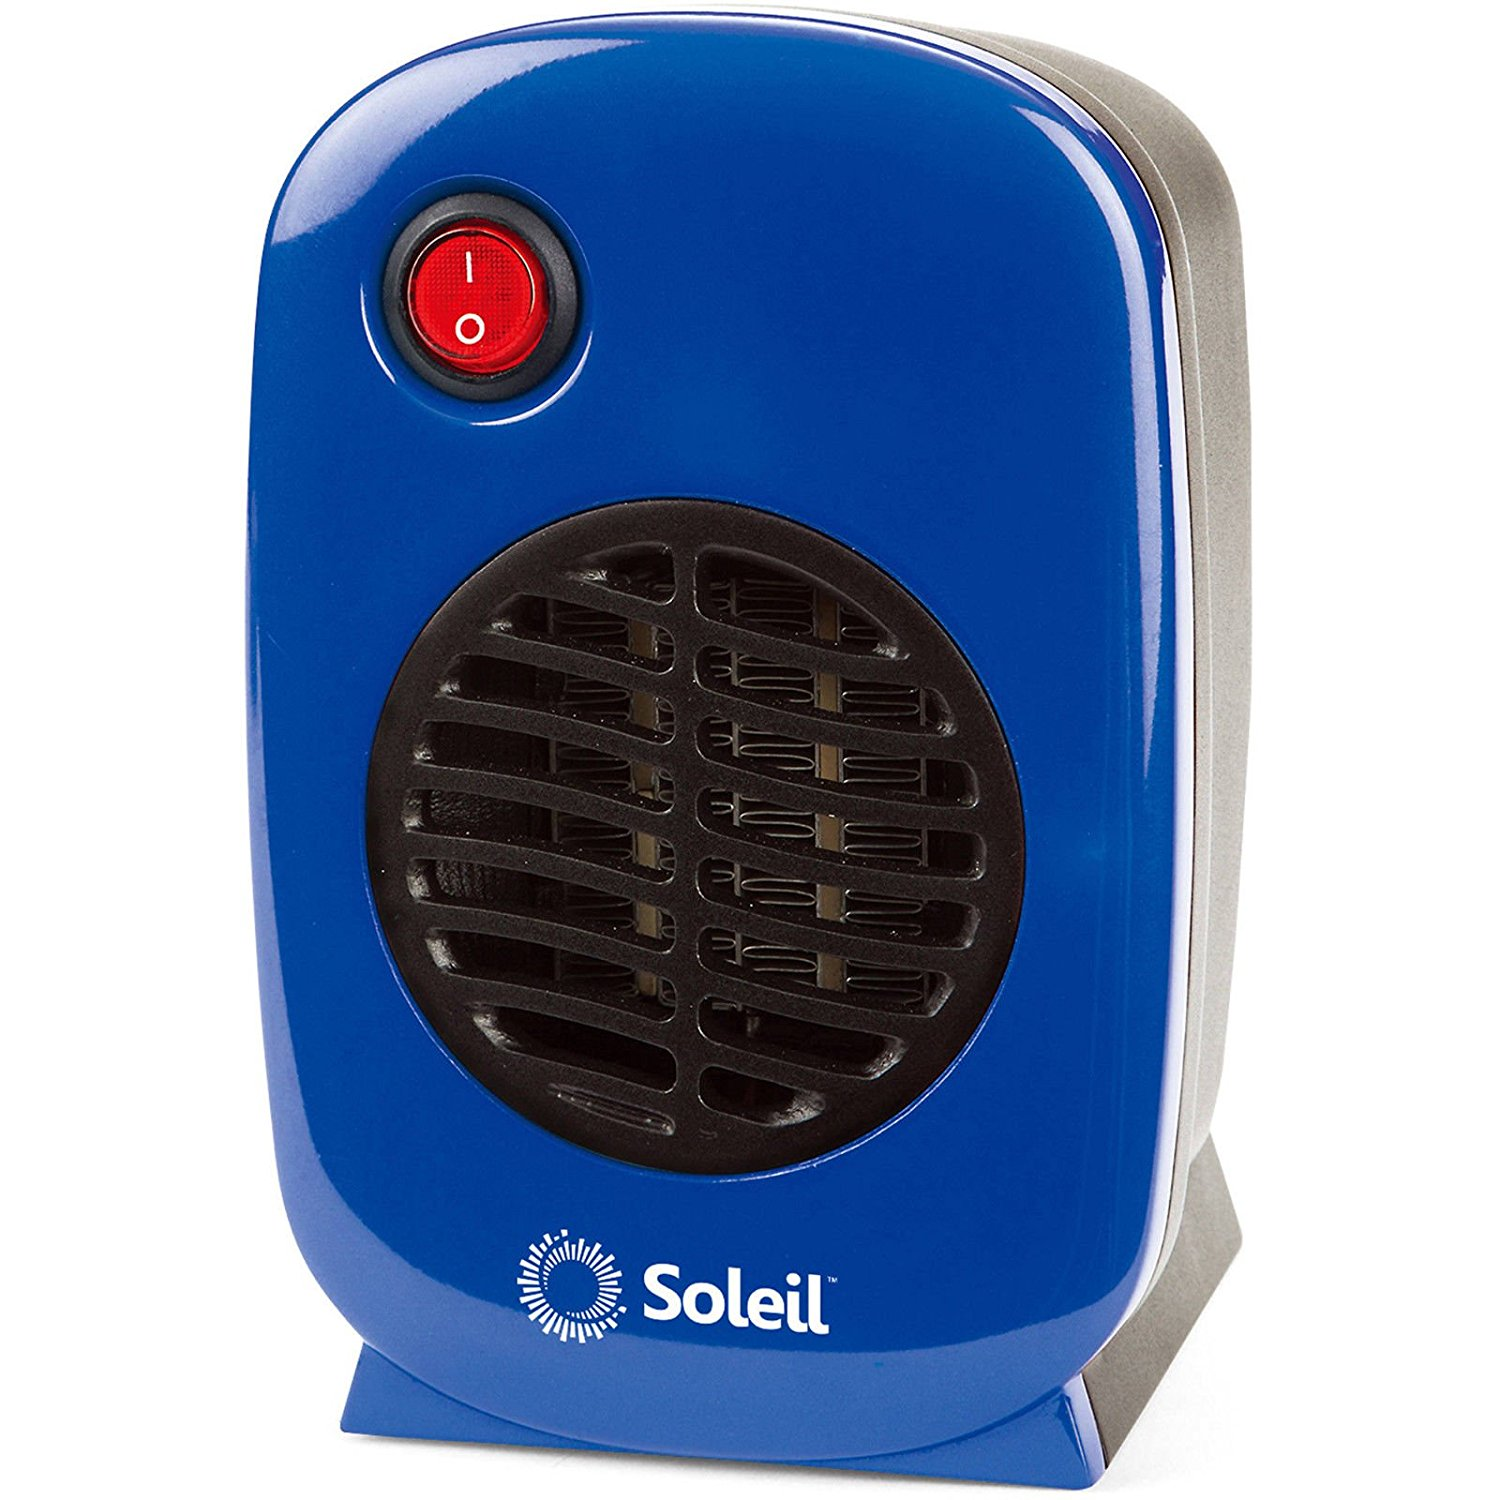 Personal, Portable Electric Ceramic Space Heater, 250 Watt MH-01 (Blue), By Soleil